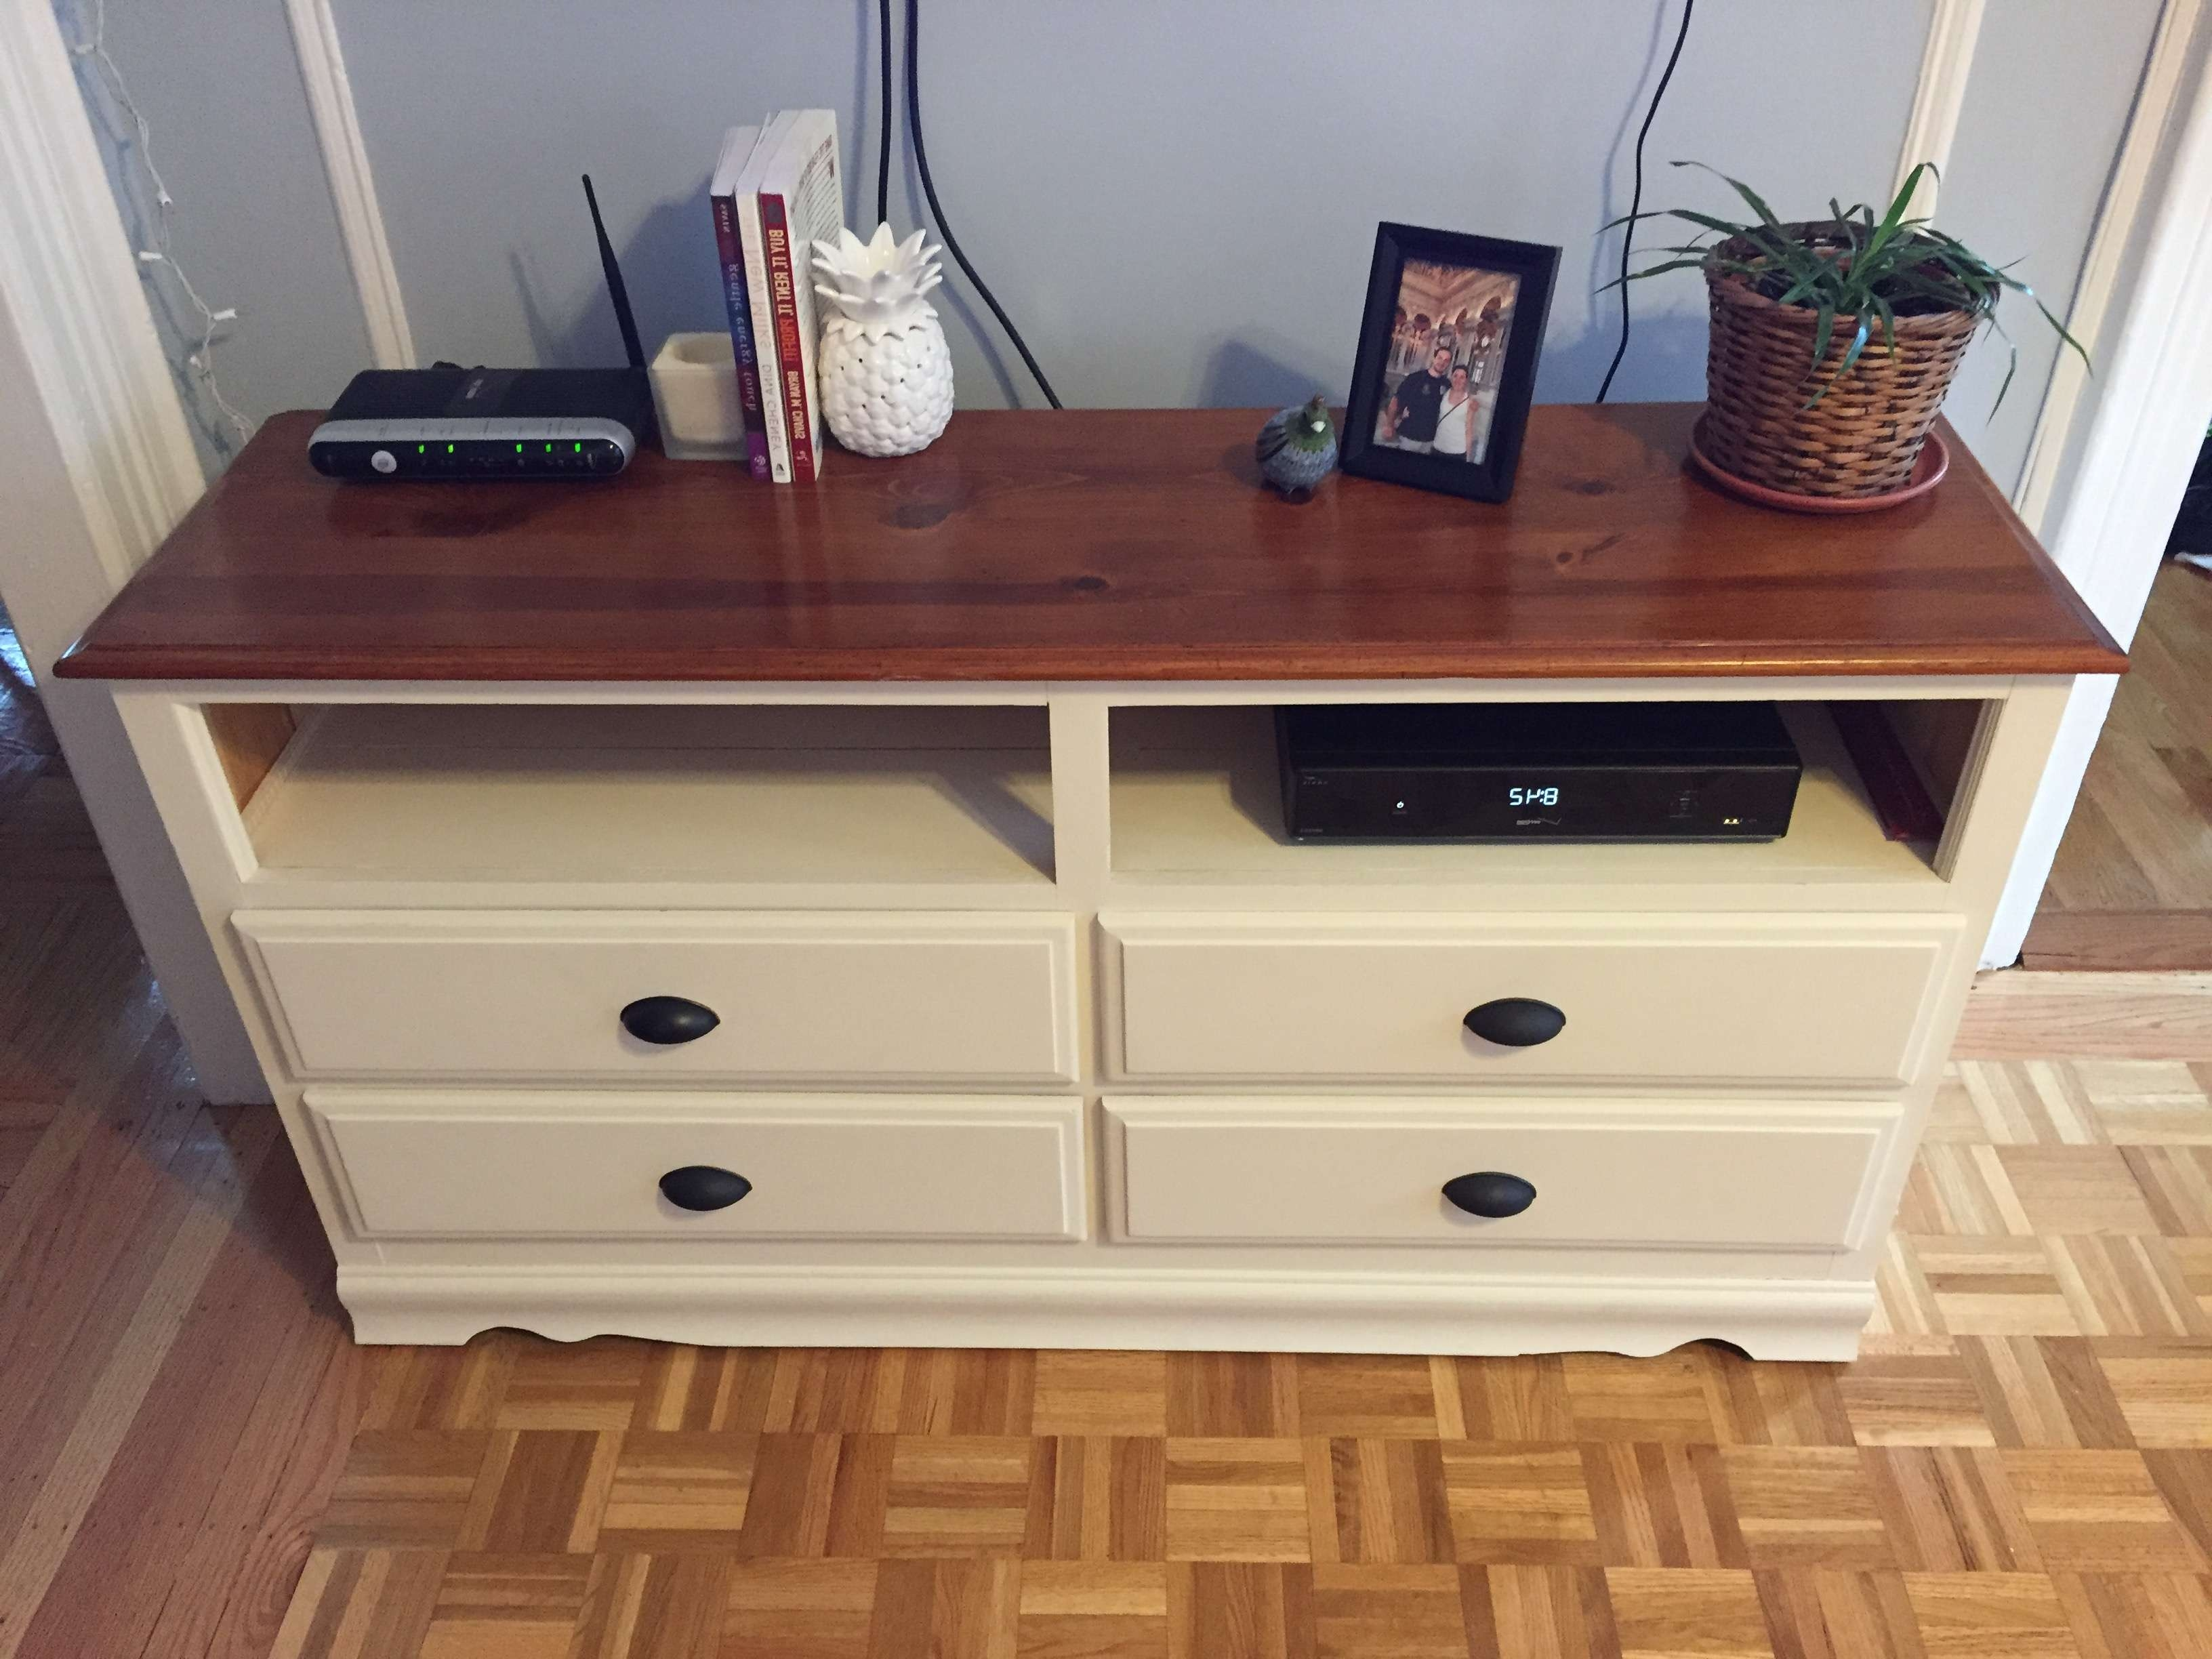 Bedroom Tv Stand Dresser Combo | Johnfante Dressers Inside Dresser And Tv Stands Combination (View 4 of 15)